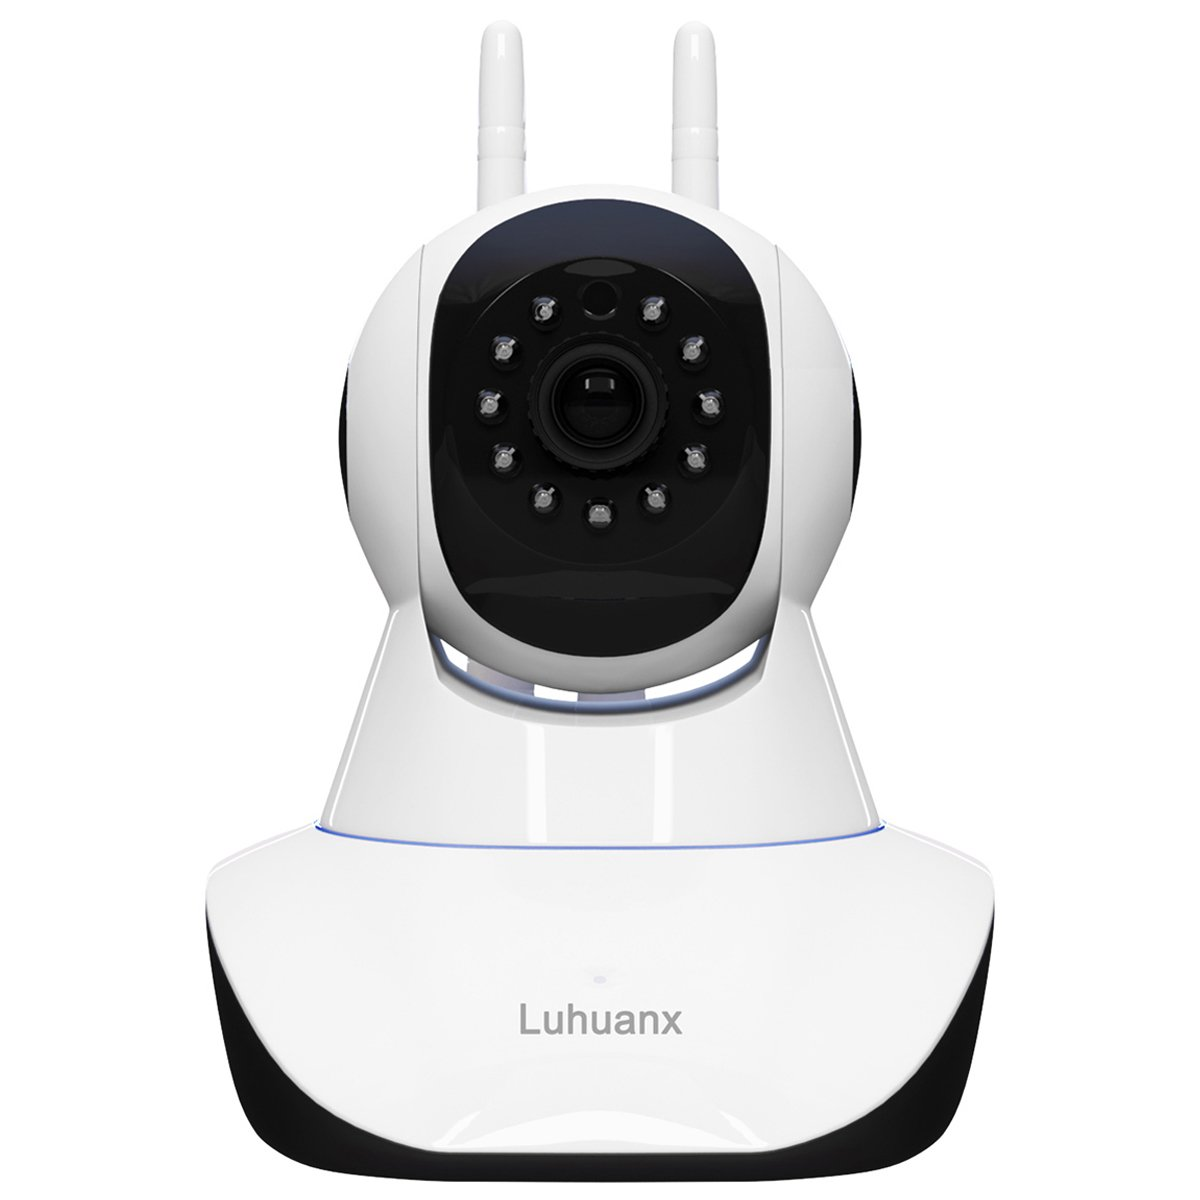 Luhuanx 960P HD WIFI IP Camera with 16G TF Card Wireless Indoor Camera Night Vision Home Security Surveillance Camera Motion Detection Two-way Audio Pan/Tilt/Zoom Monitor for Baby/Elder/Pet